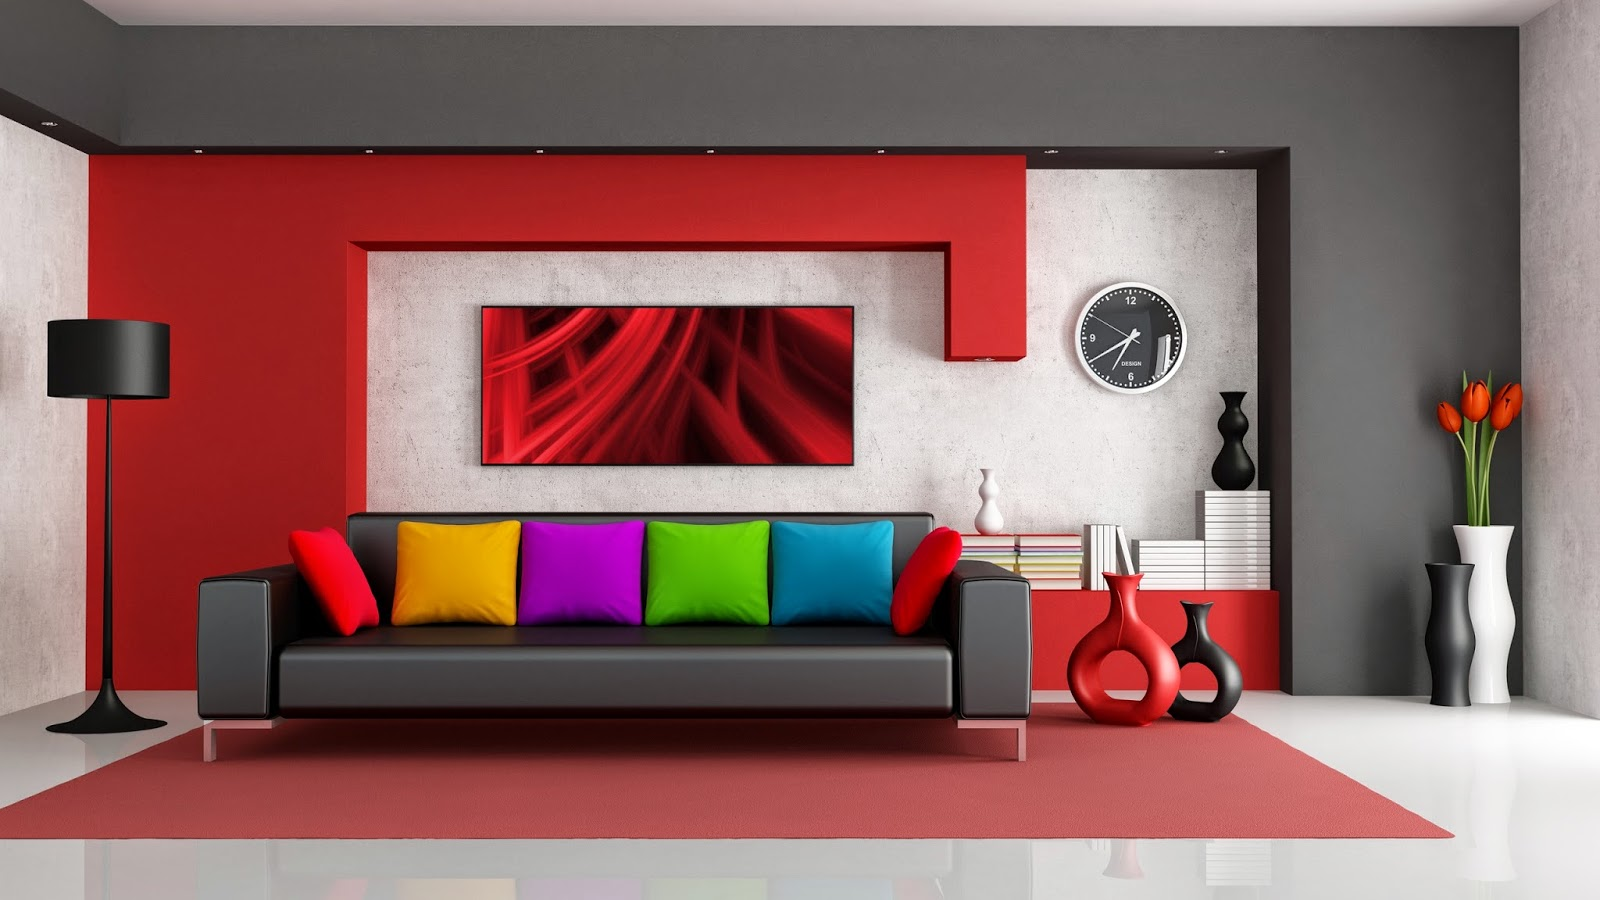 Shown Elegant Interior Design With Color Choices